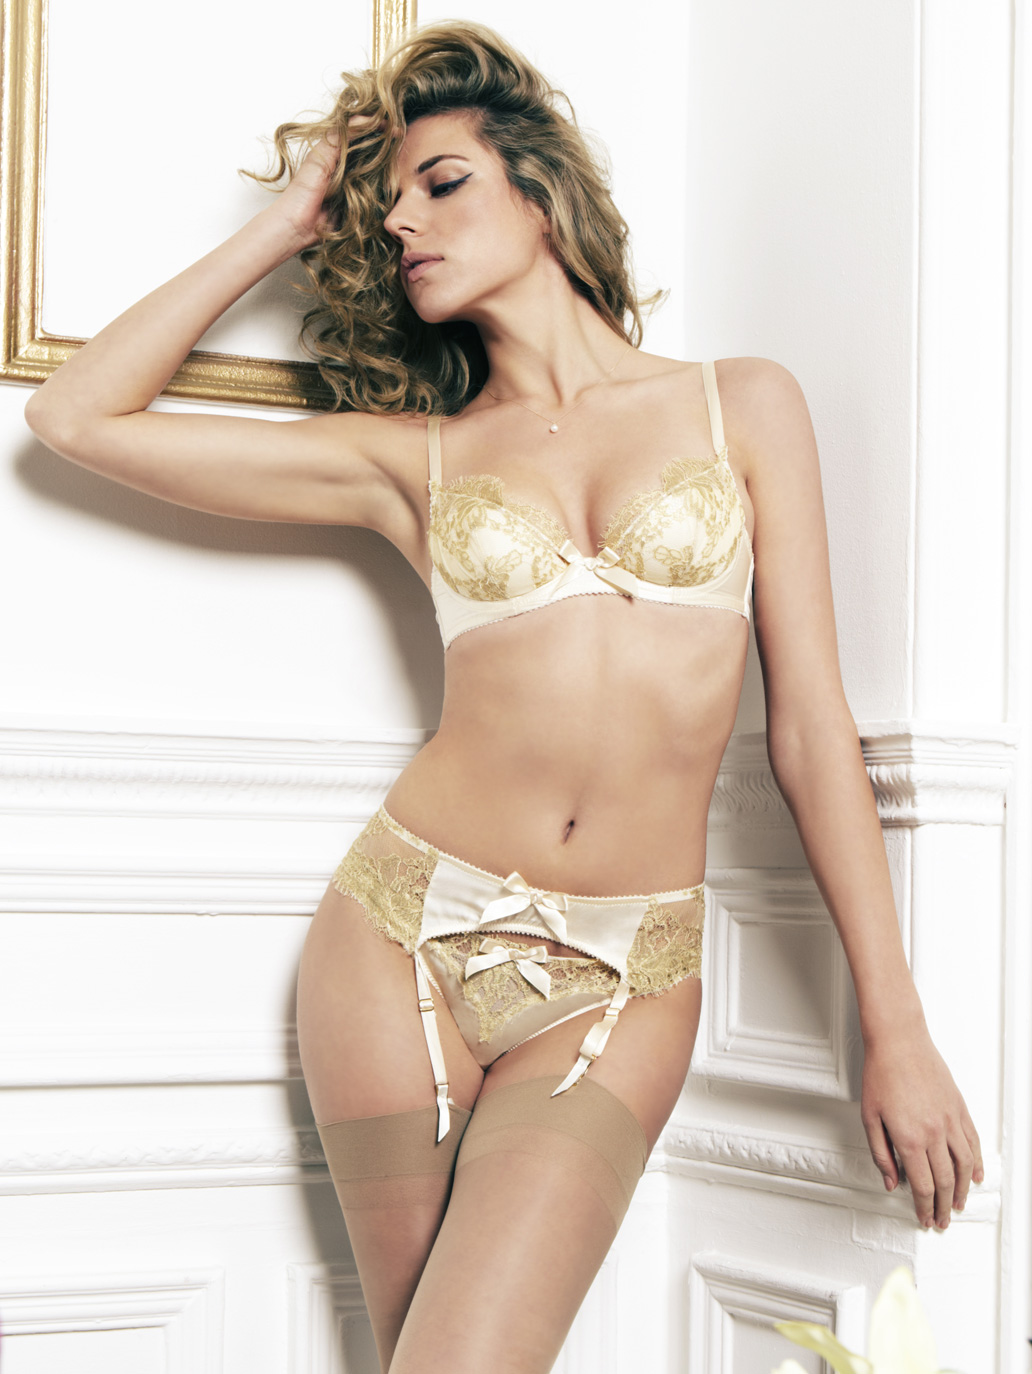 64aace89b3 Luxury Gold Lace and Silk Suspender Belt - 11 Rue De Penthievre